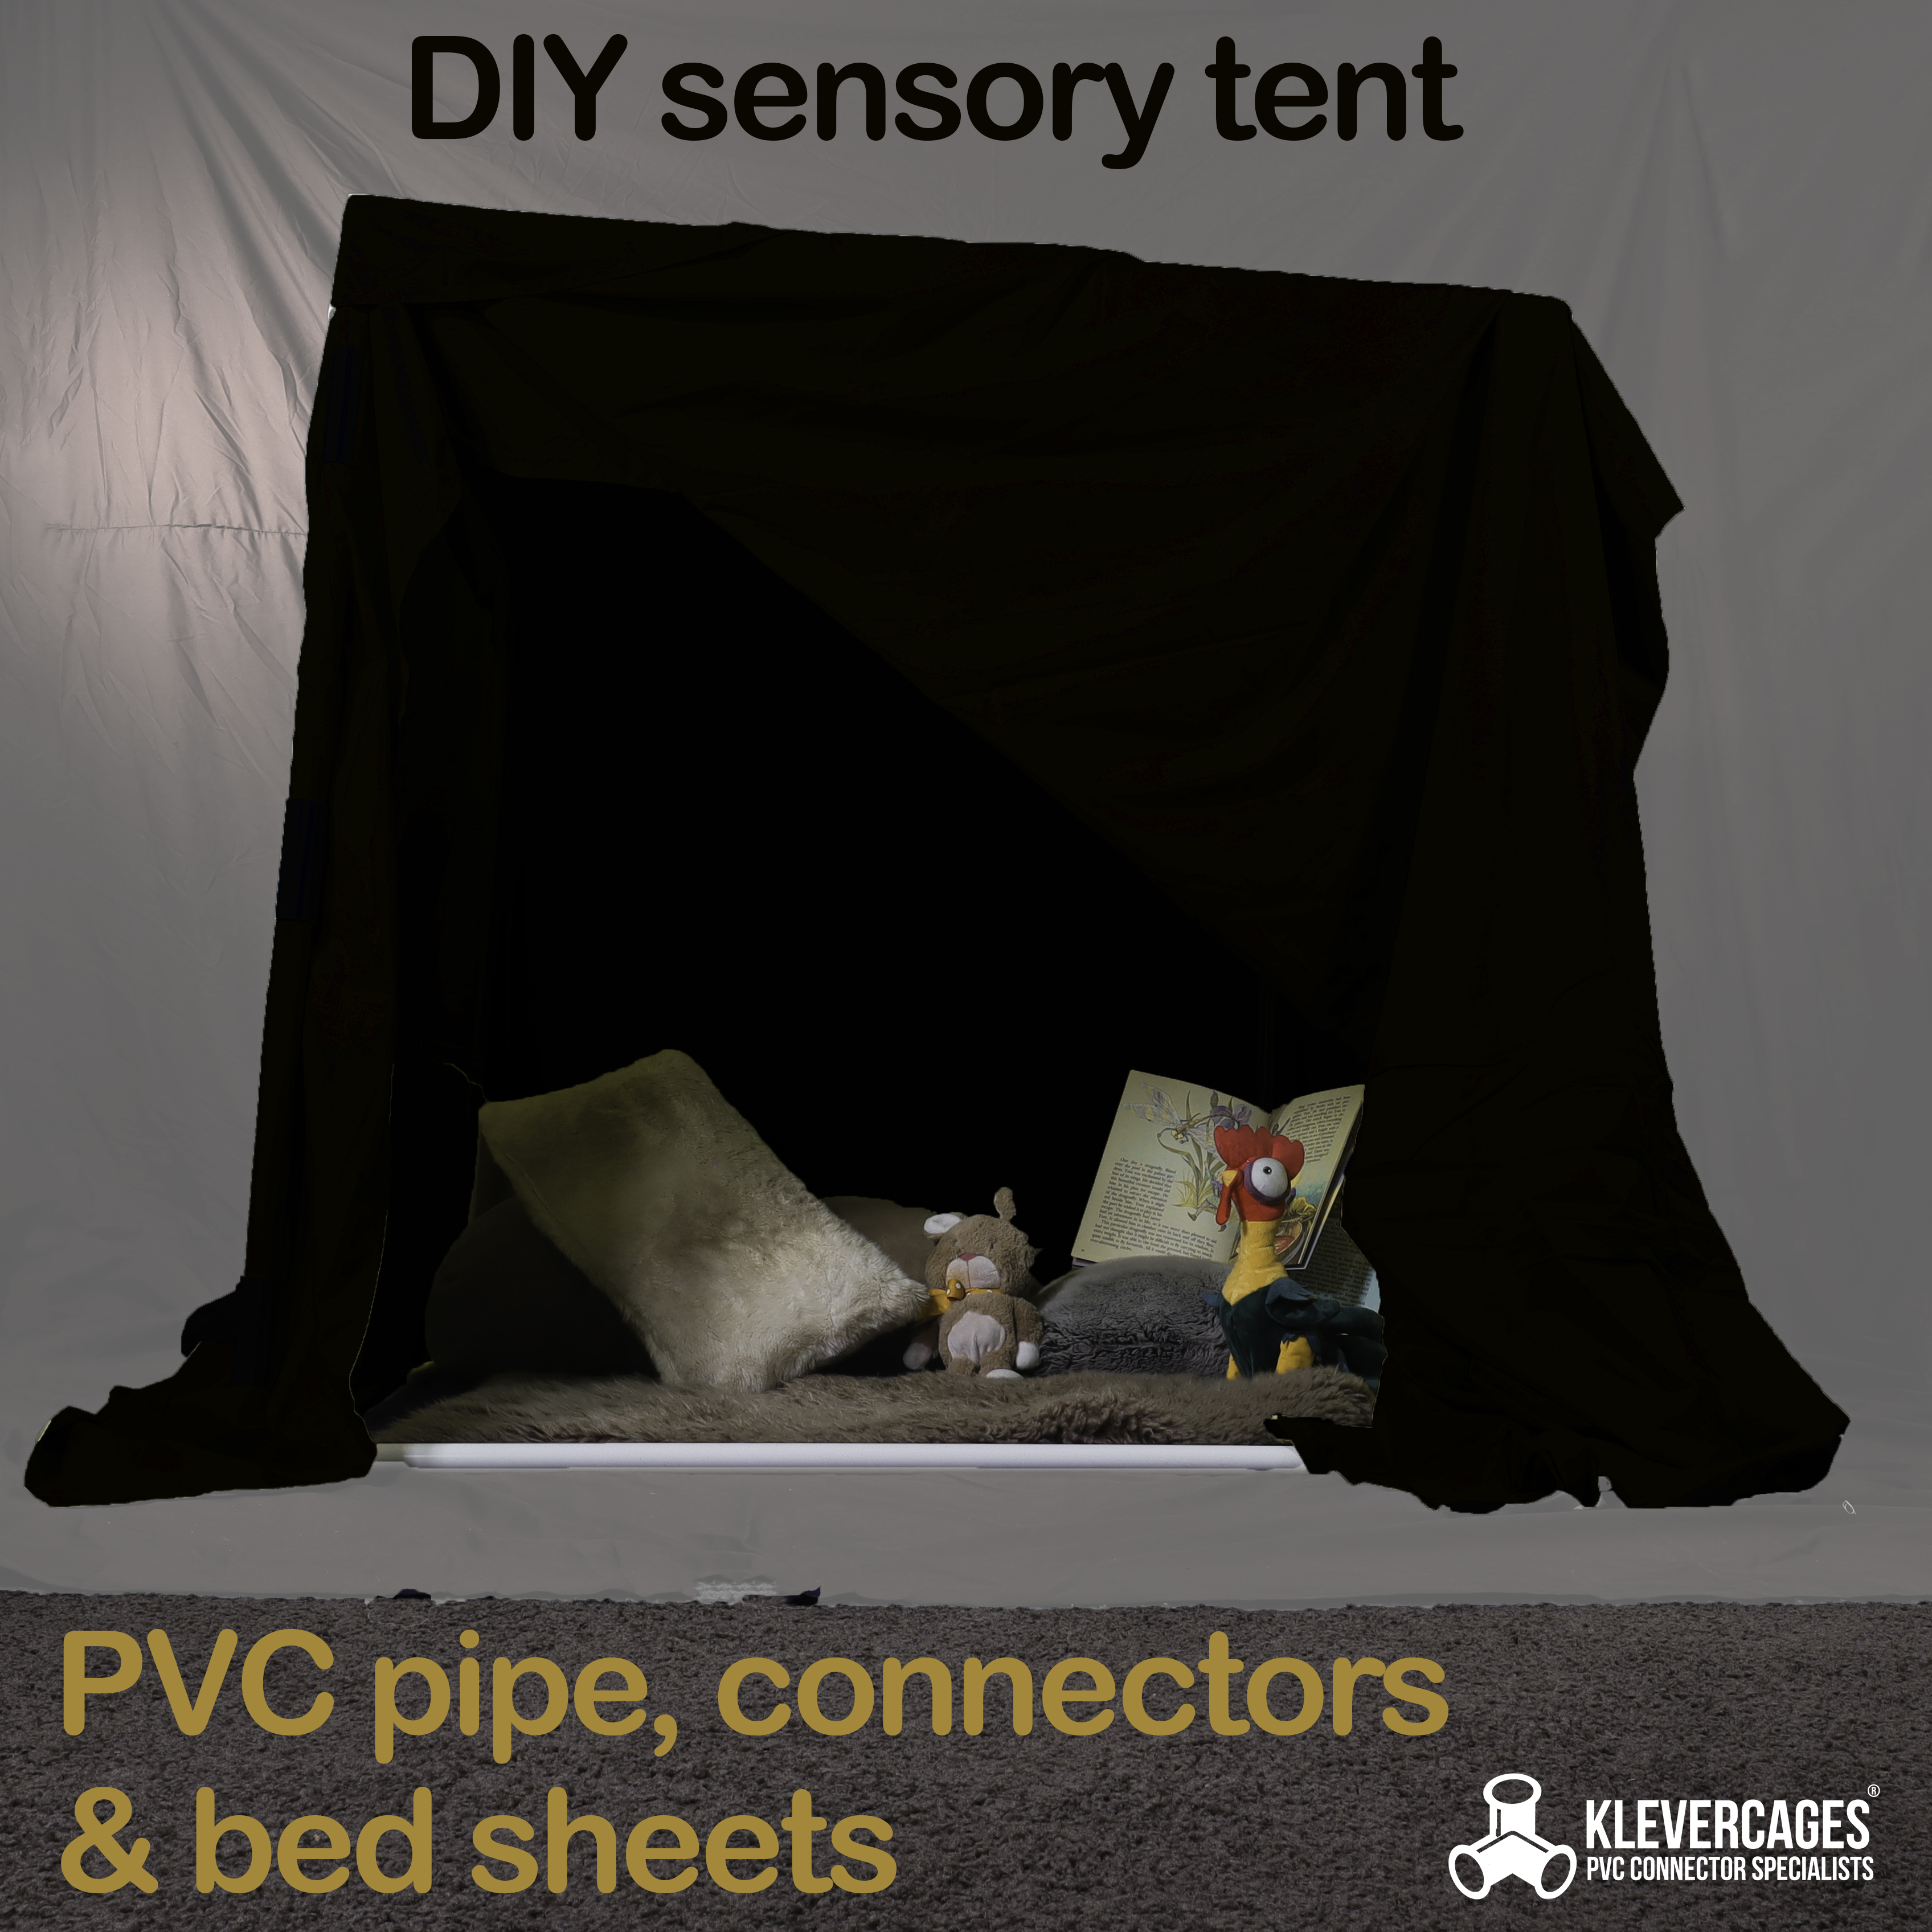 DIY sensory tent or dark den built with PVC pipes and connectors covered with a dark bed sheet to decrease the amount of stimulation for your child and make them feel safe and calm